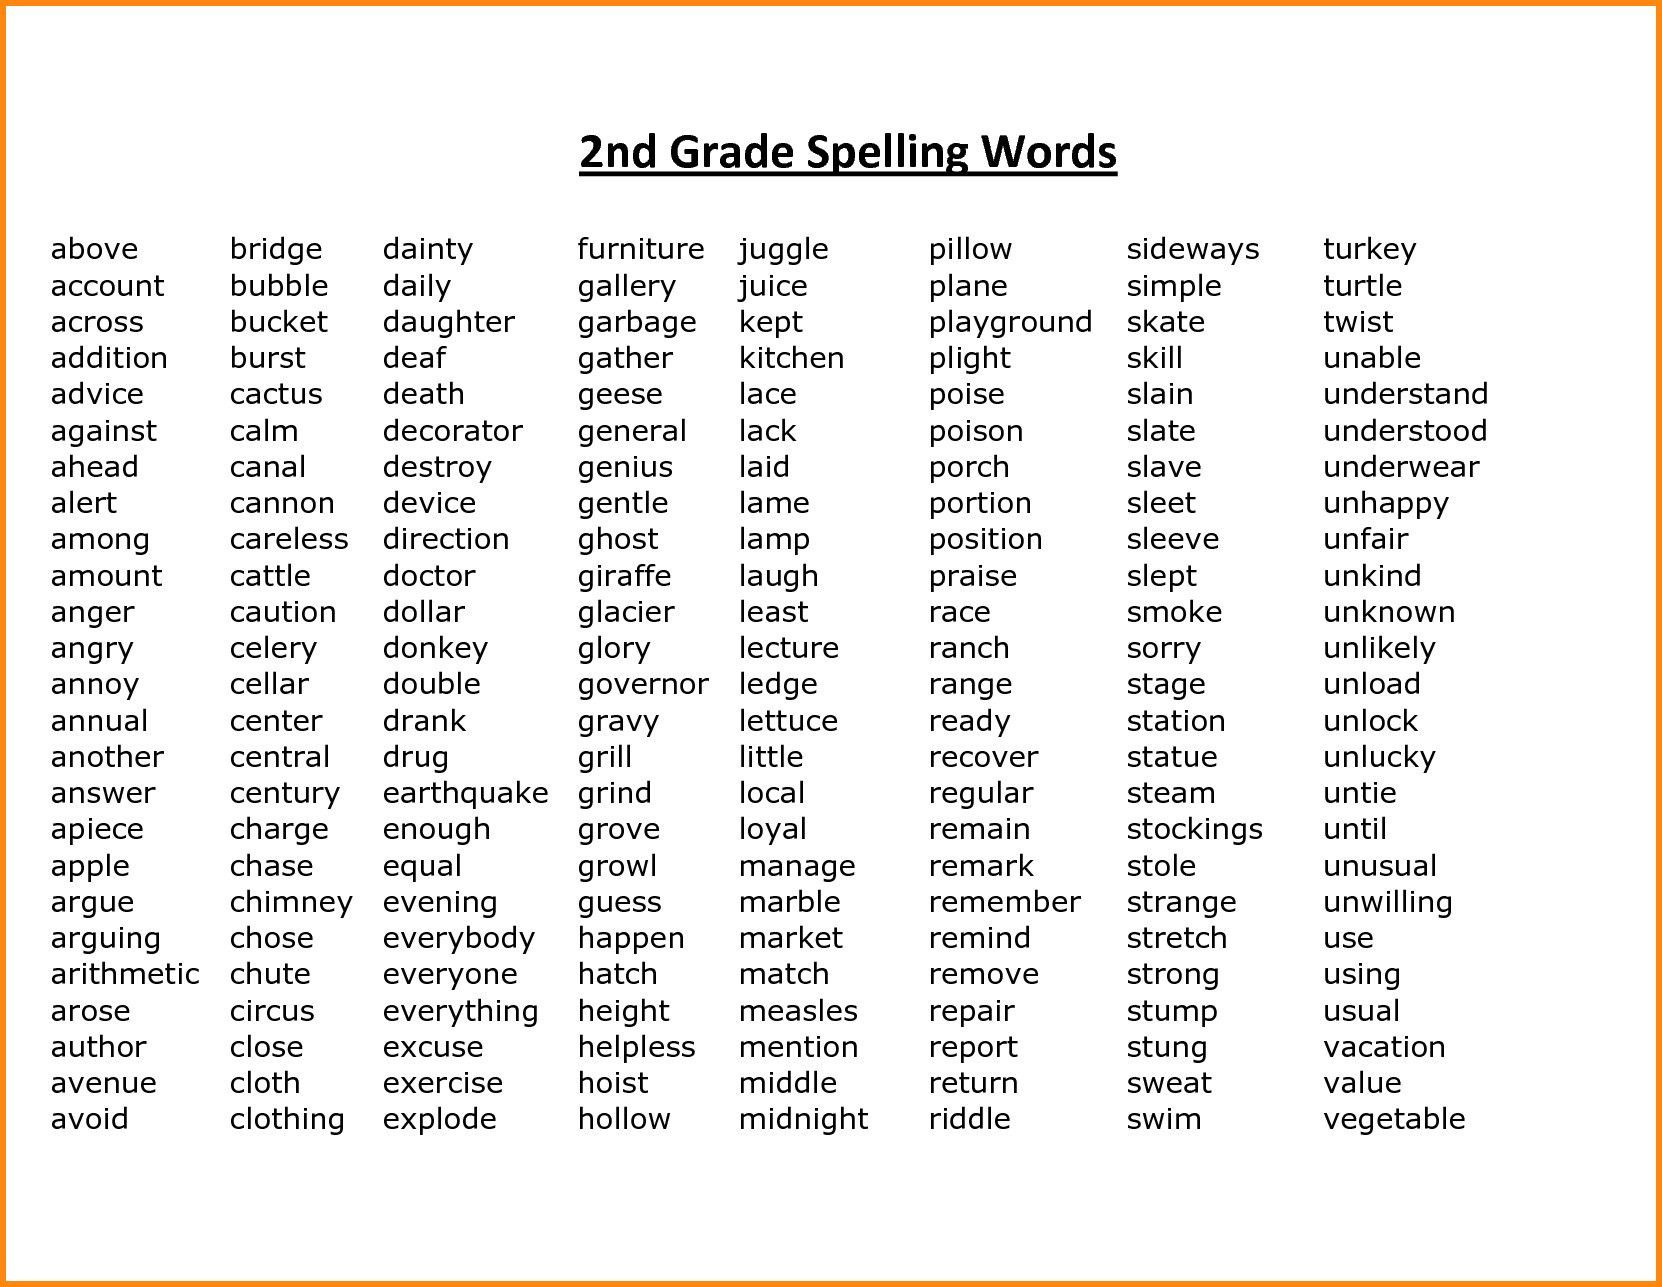 2nd Grade Spelling Worksheets 2nd Grade Spelling Words Best Coloring Pages for Kids In